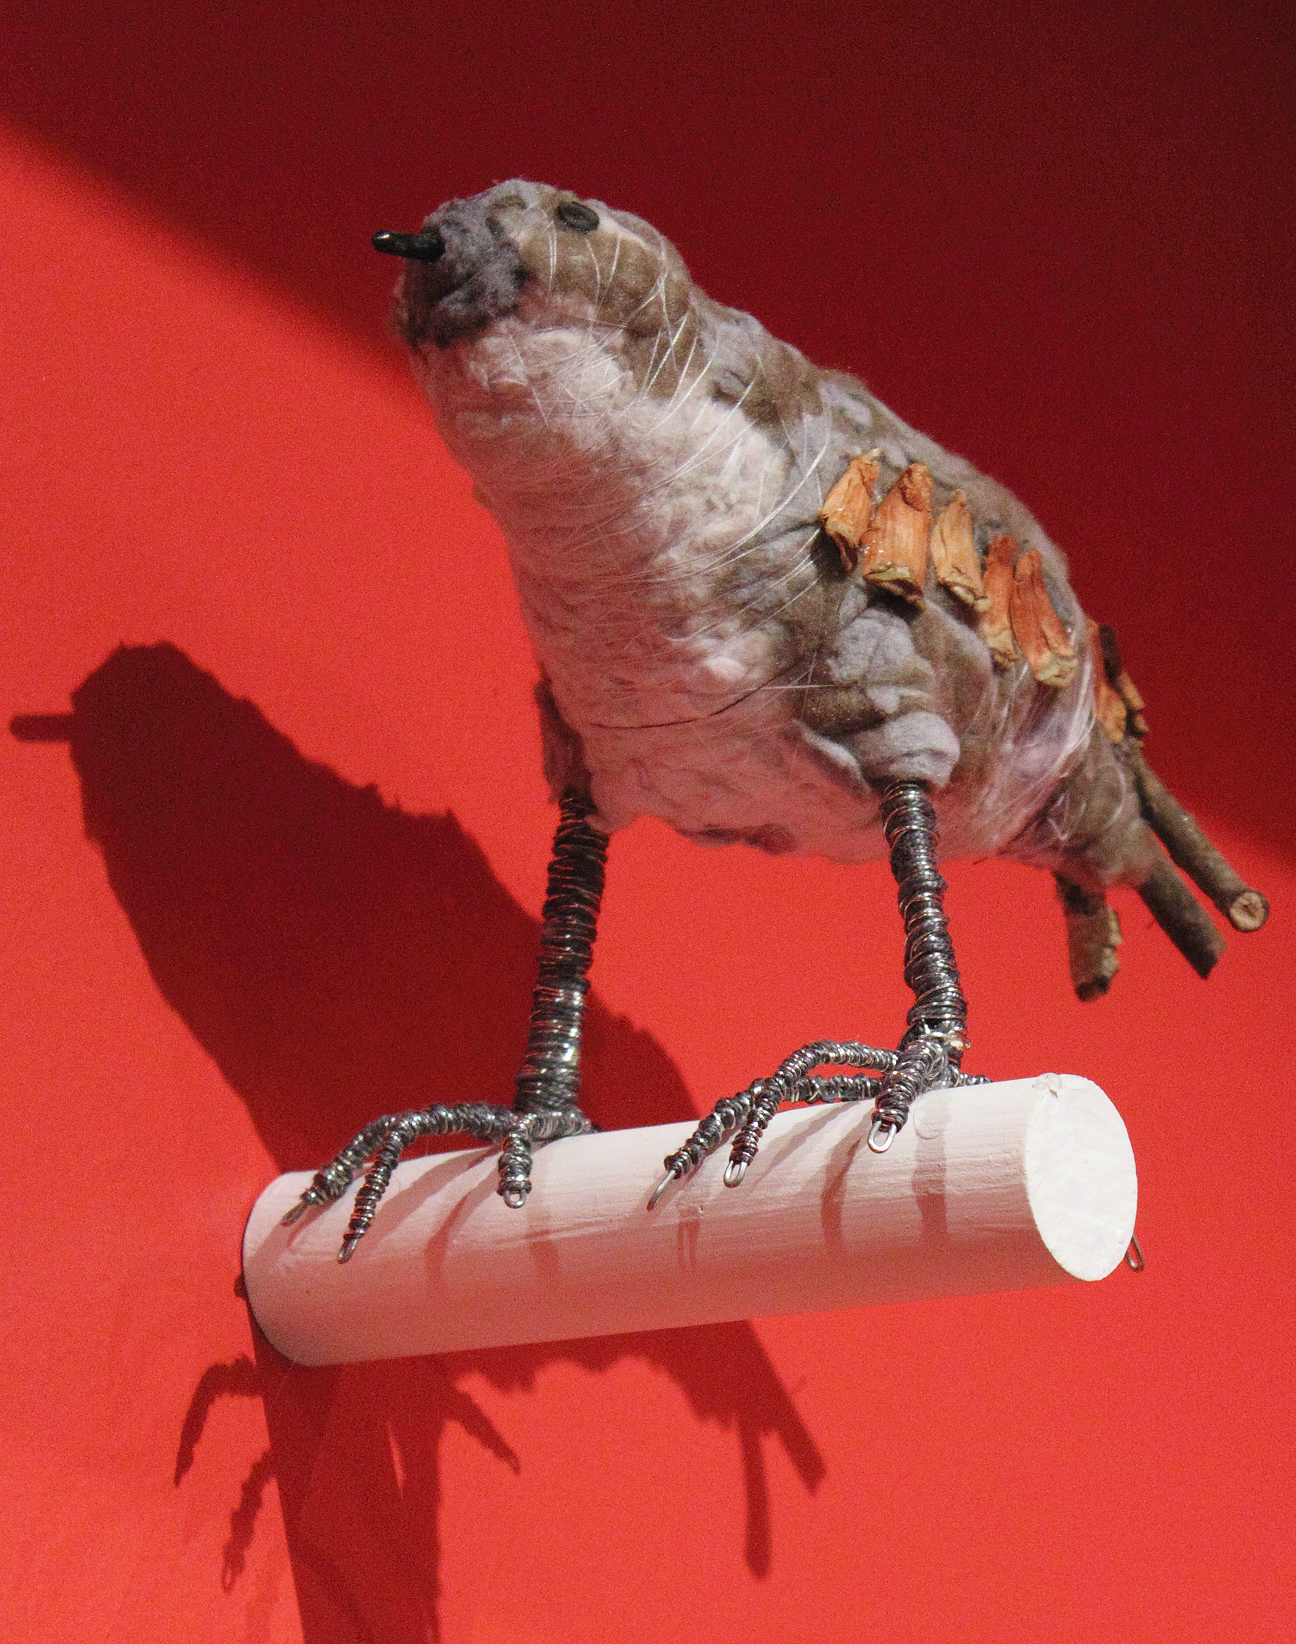 (above) 'Sandpiper,' 2010, mixed media and recycled materials